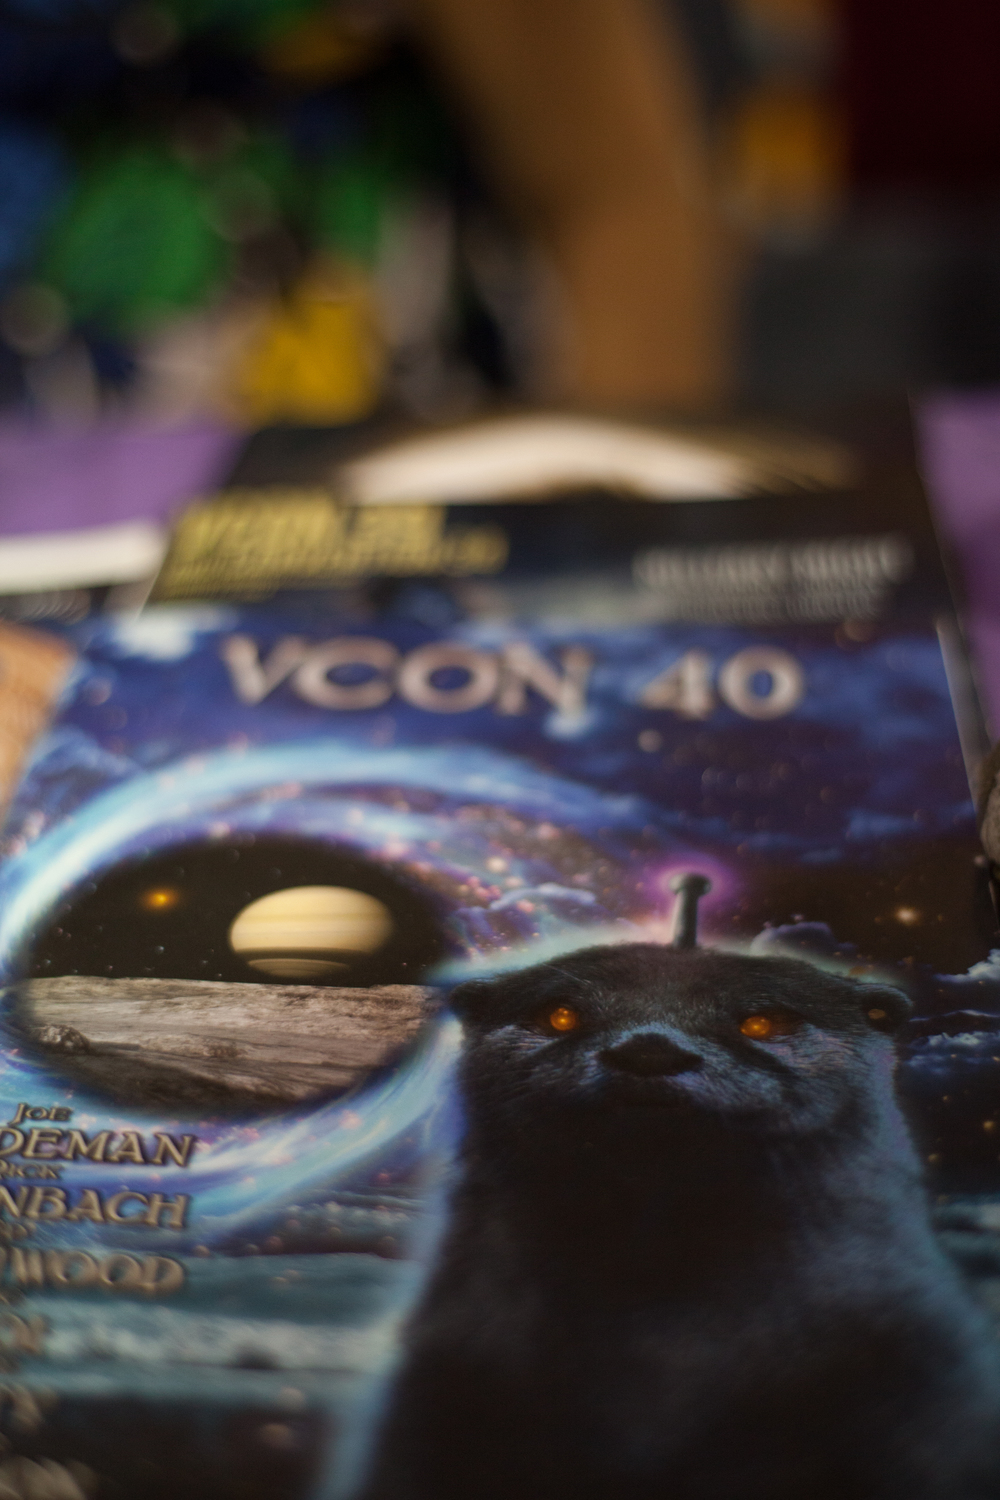 VCON, Vancouver's premier sci-fi, fantasy and games convention.